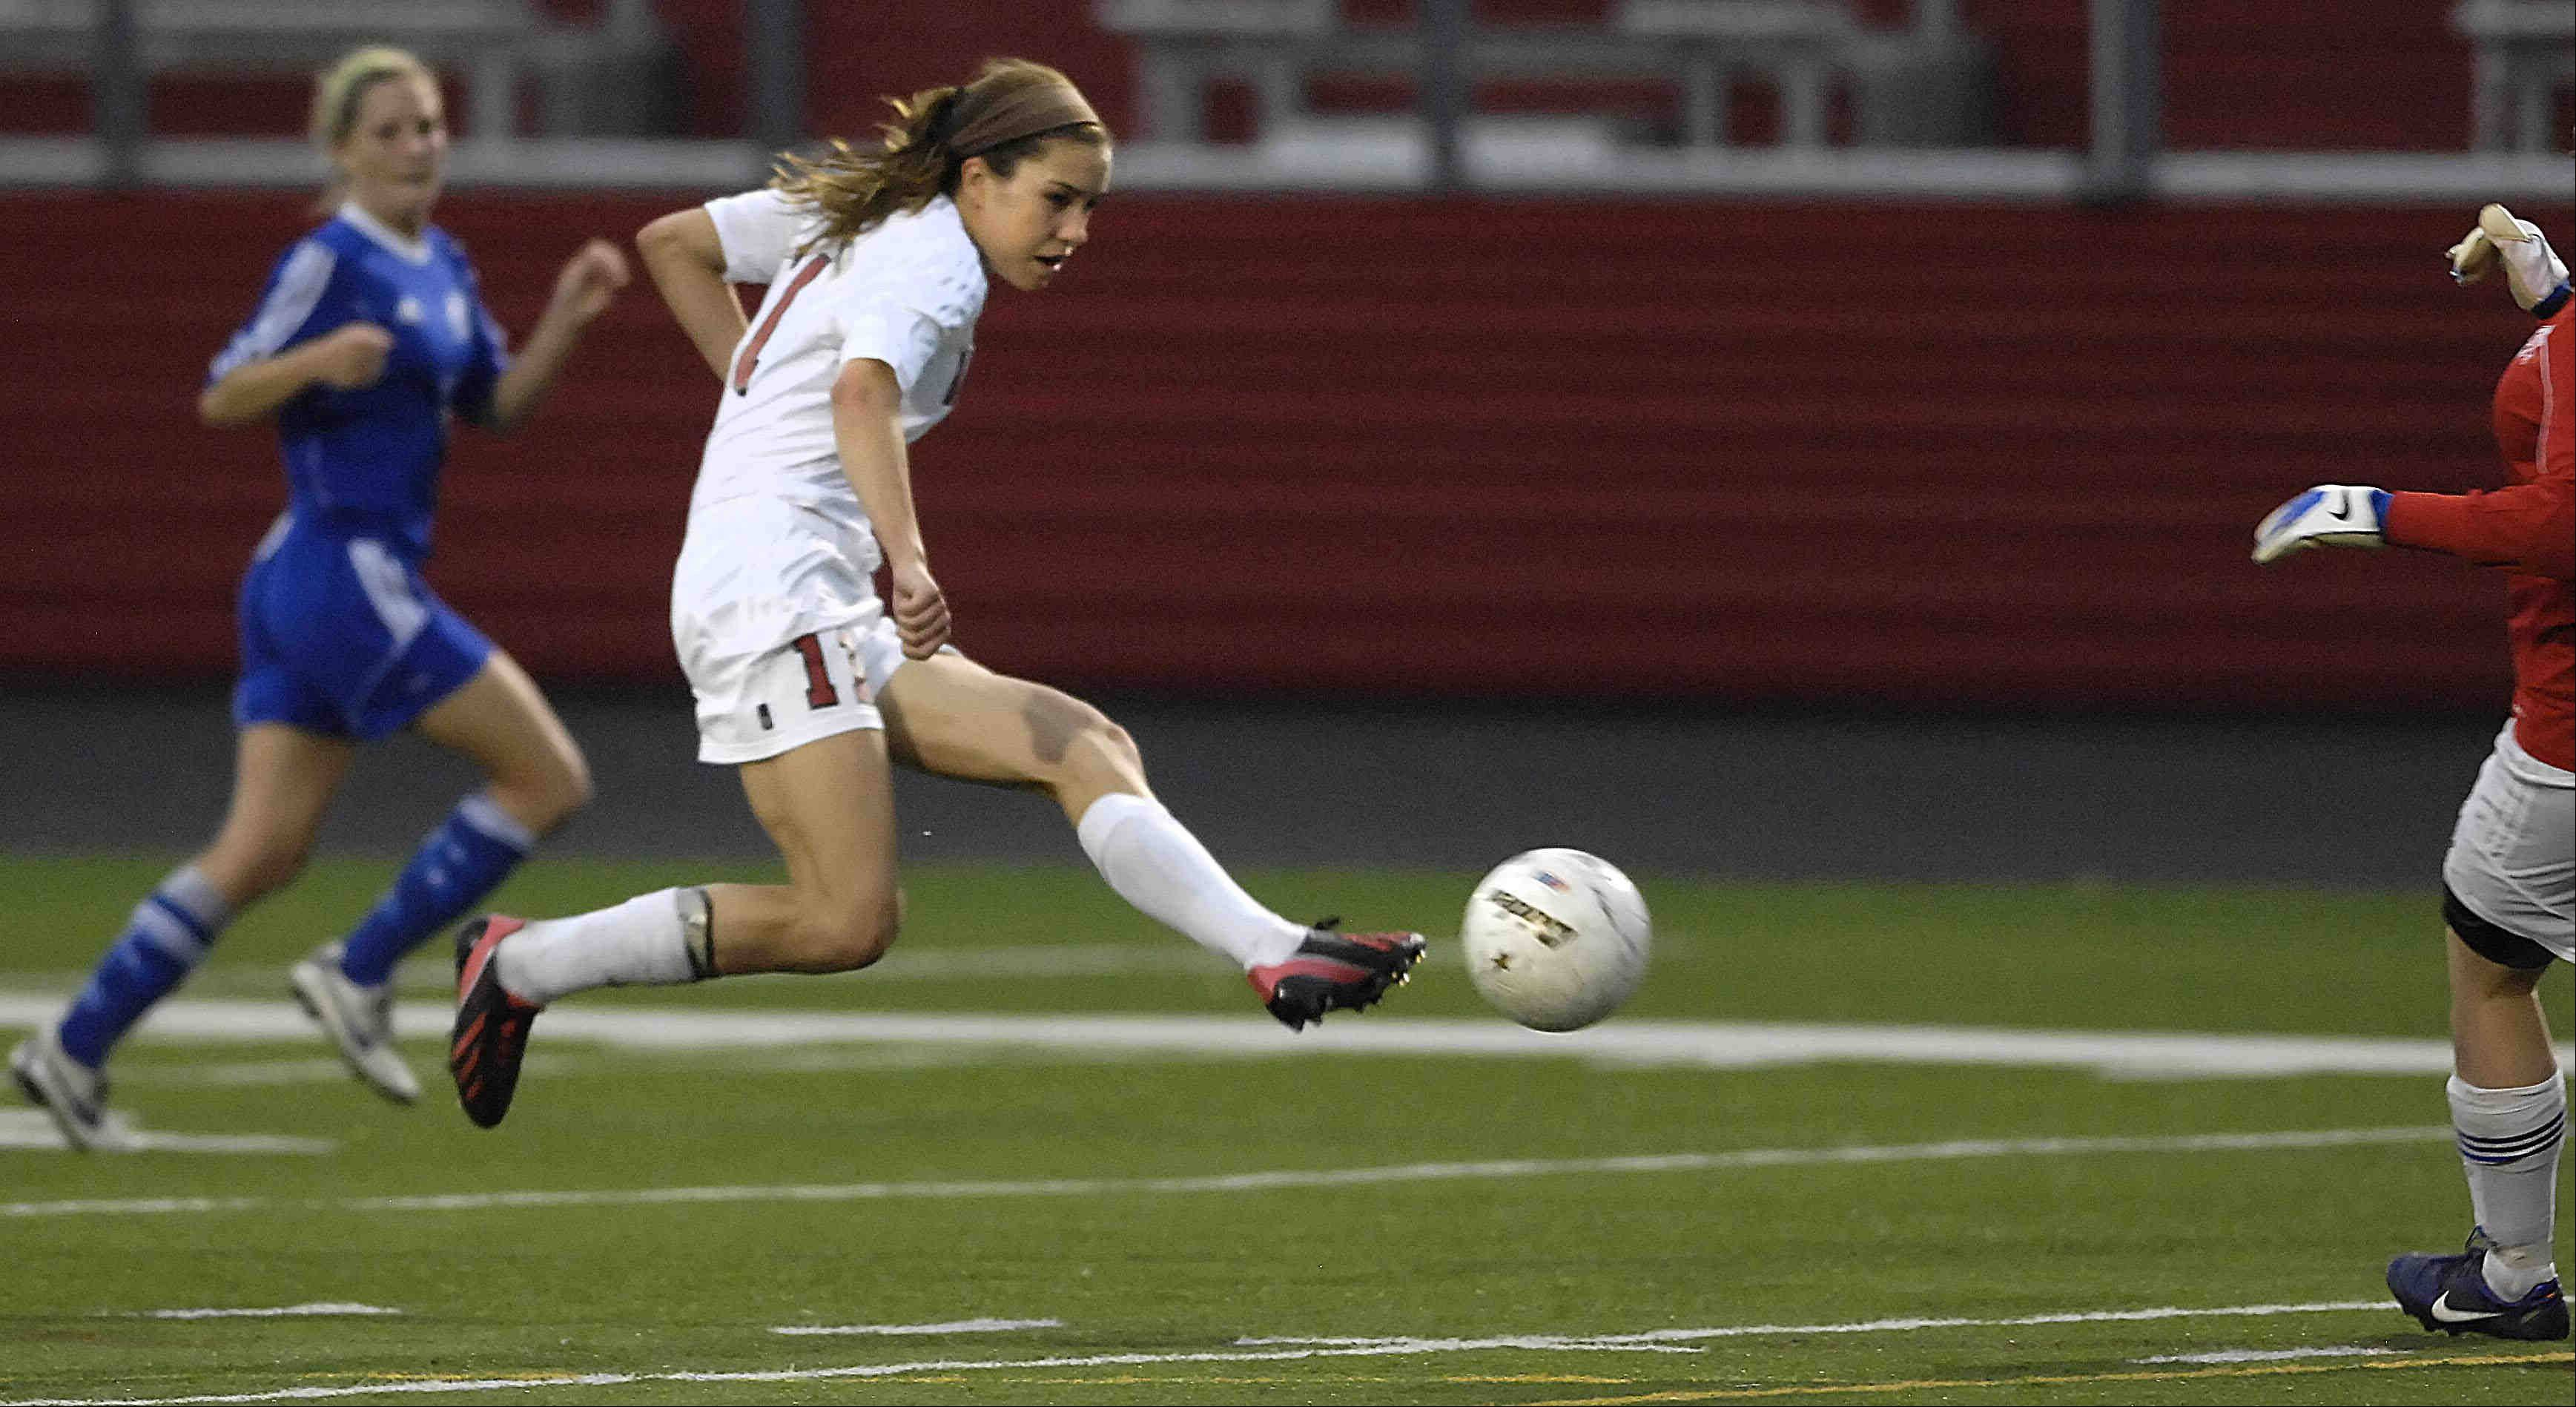 Barrington�s Jenna Szczesny kicks a first-half goal against St. Charles North Tuesday in the supersectional game in Barrington, before it was delayed by lightning.